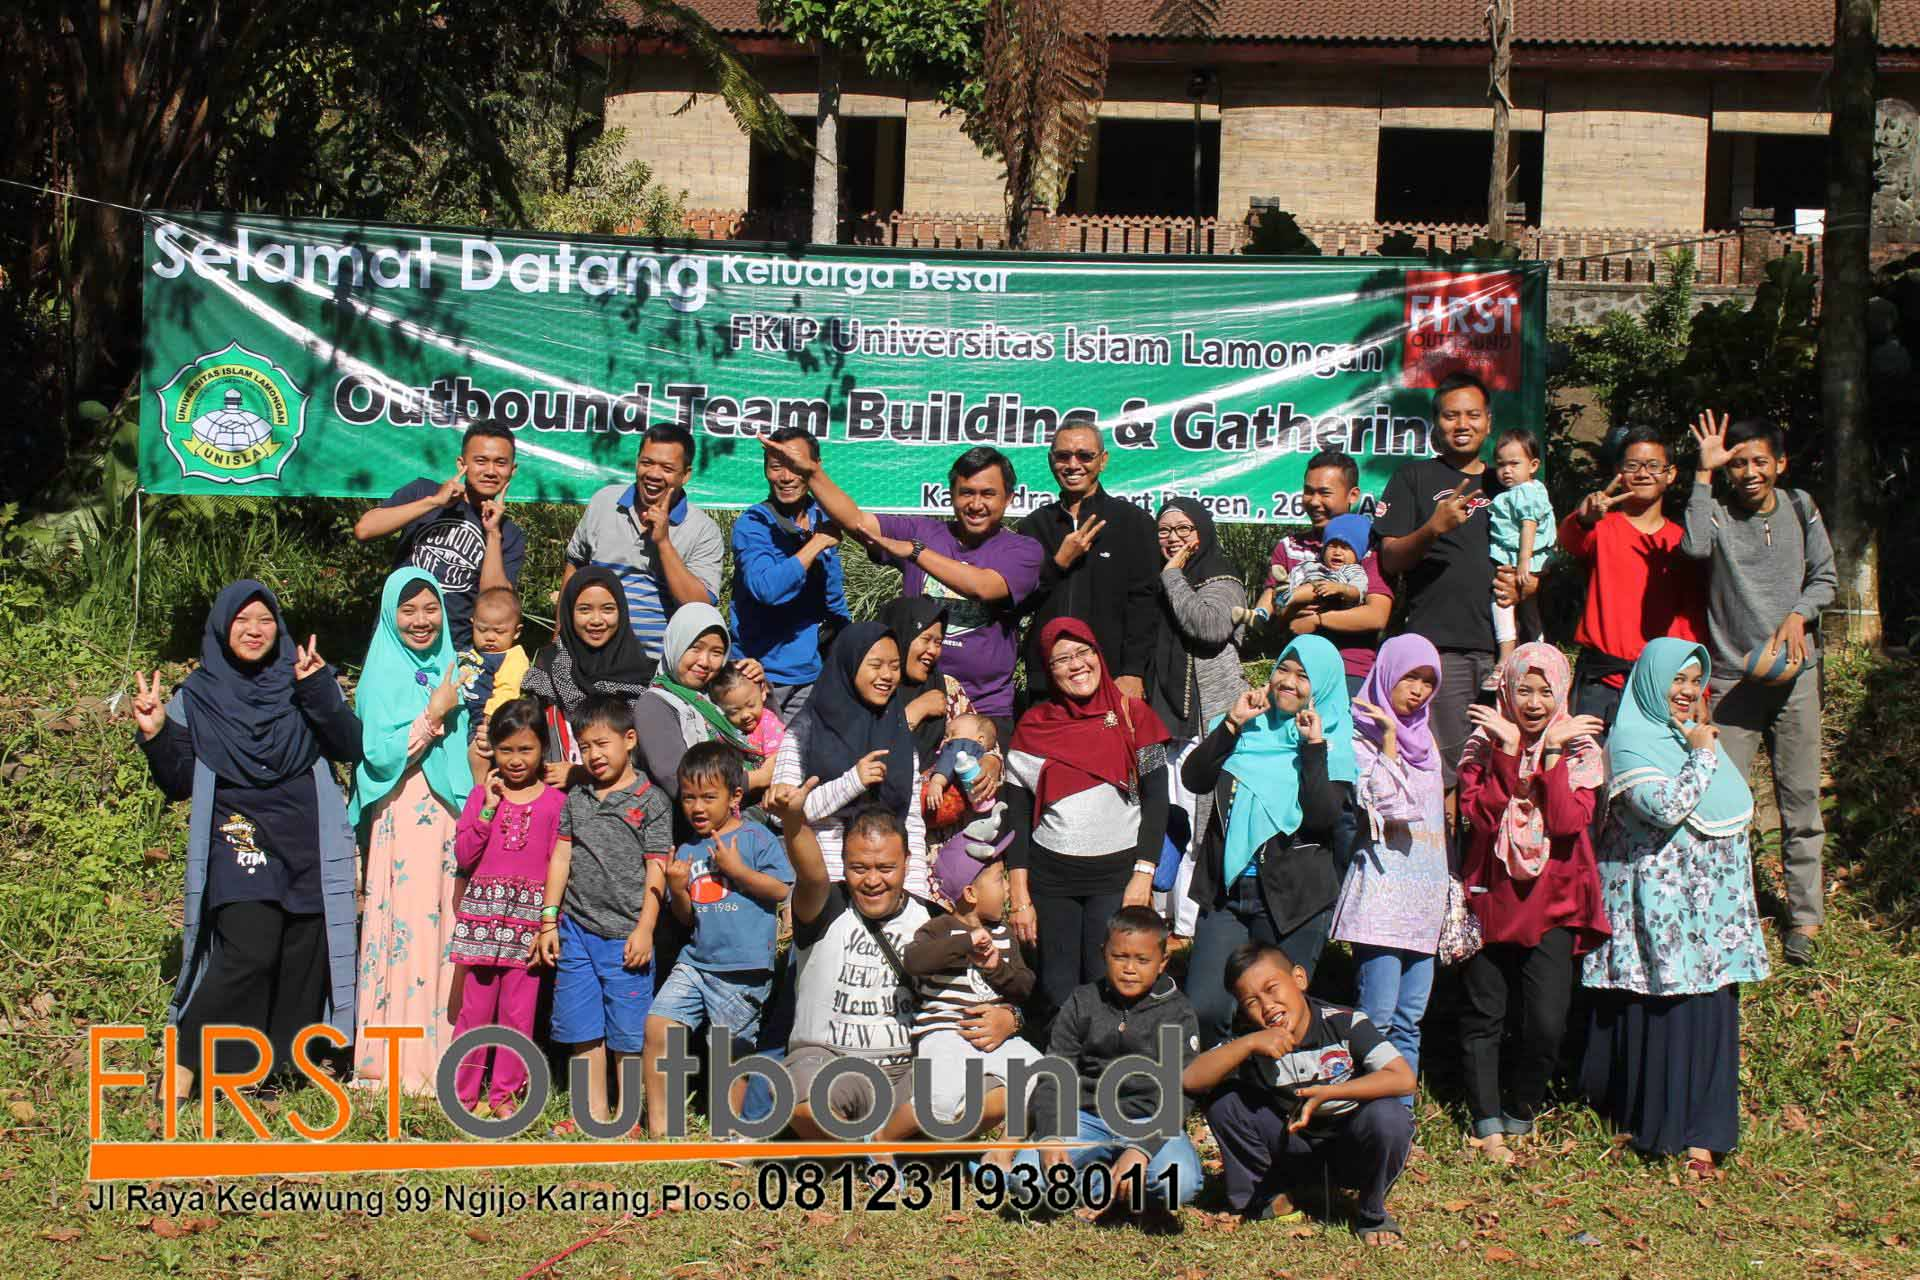 081231938011, outbound gathering, outbound family gathering, outbound fun games, FKIP UNISLA